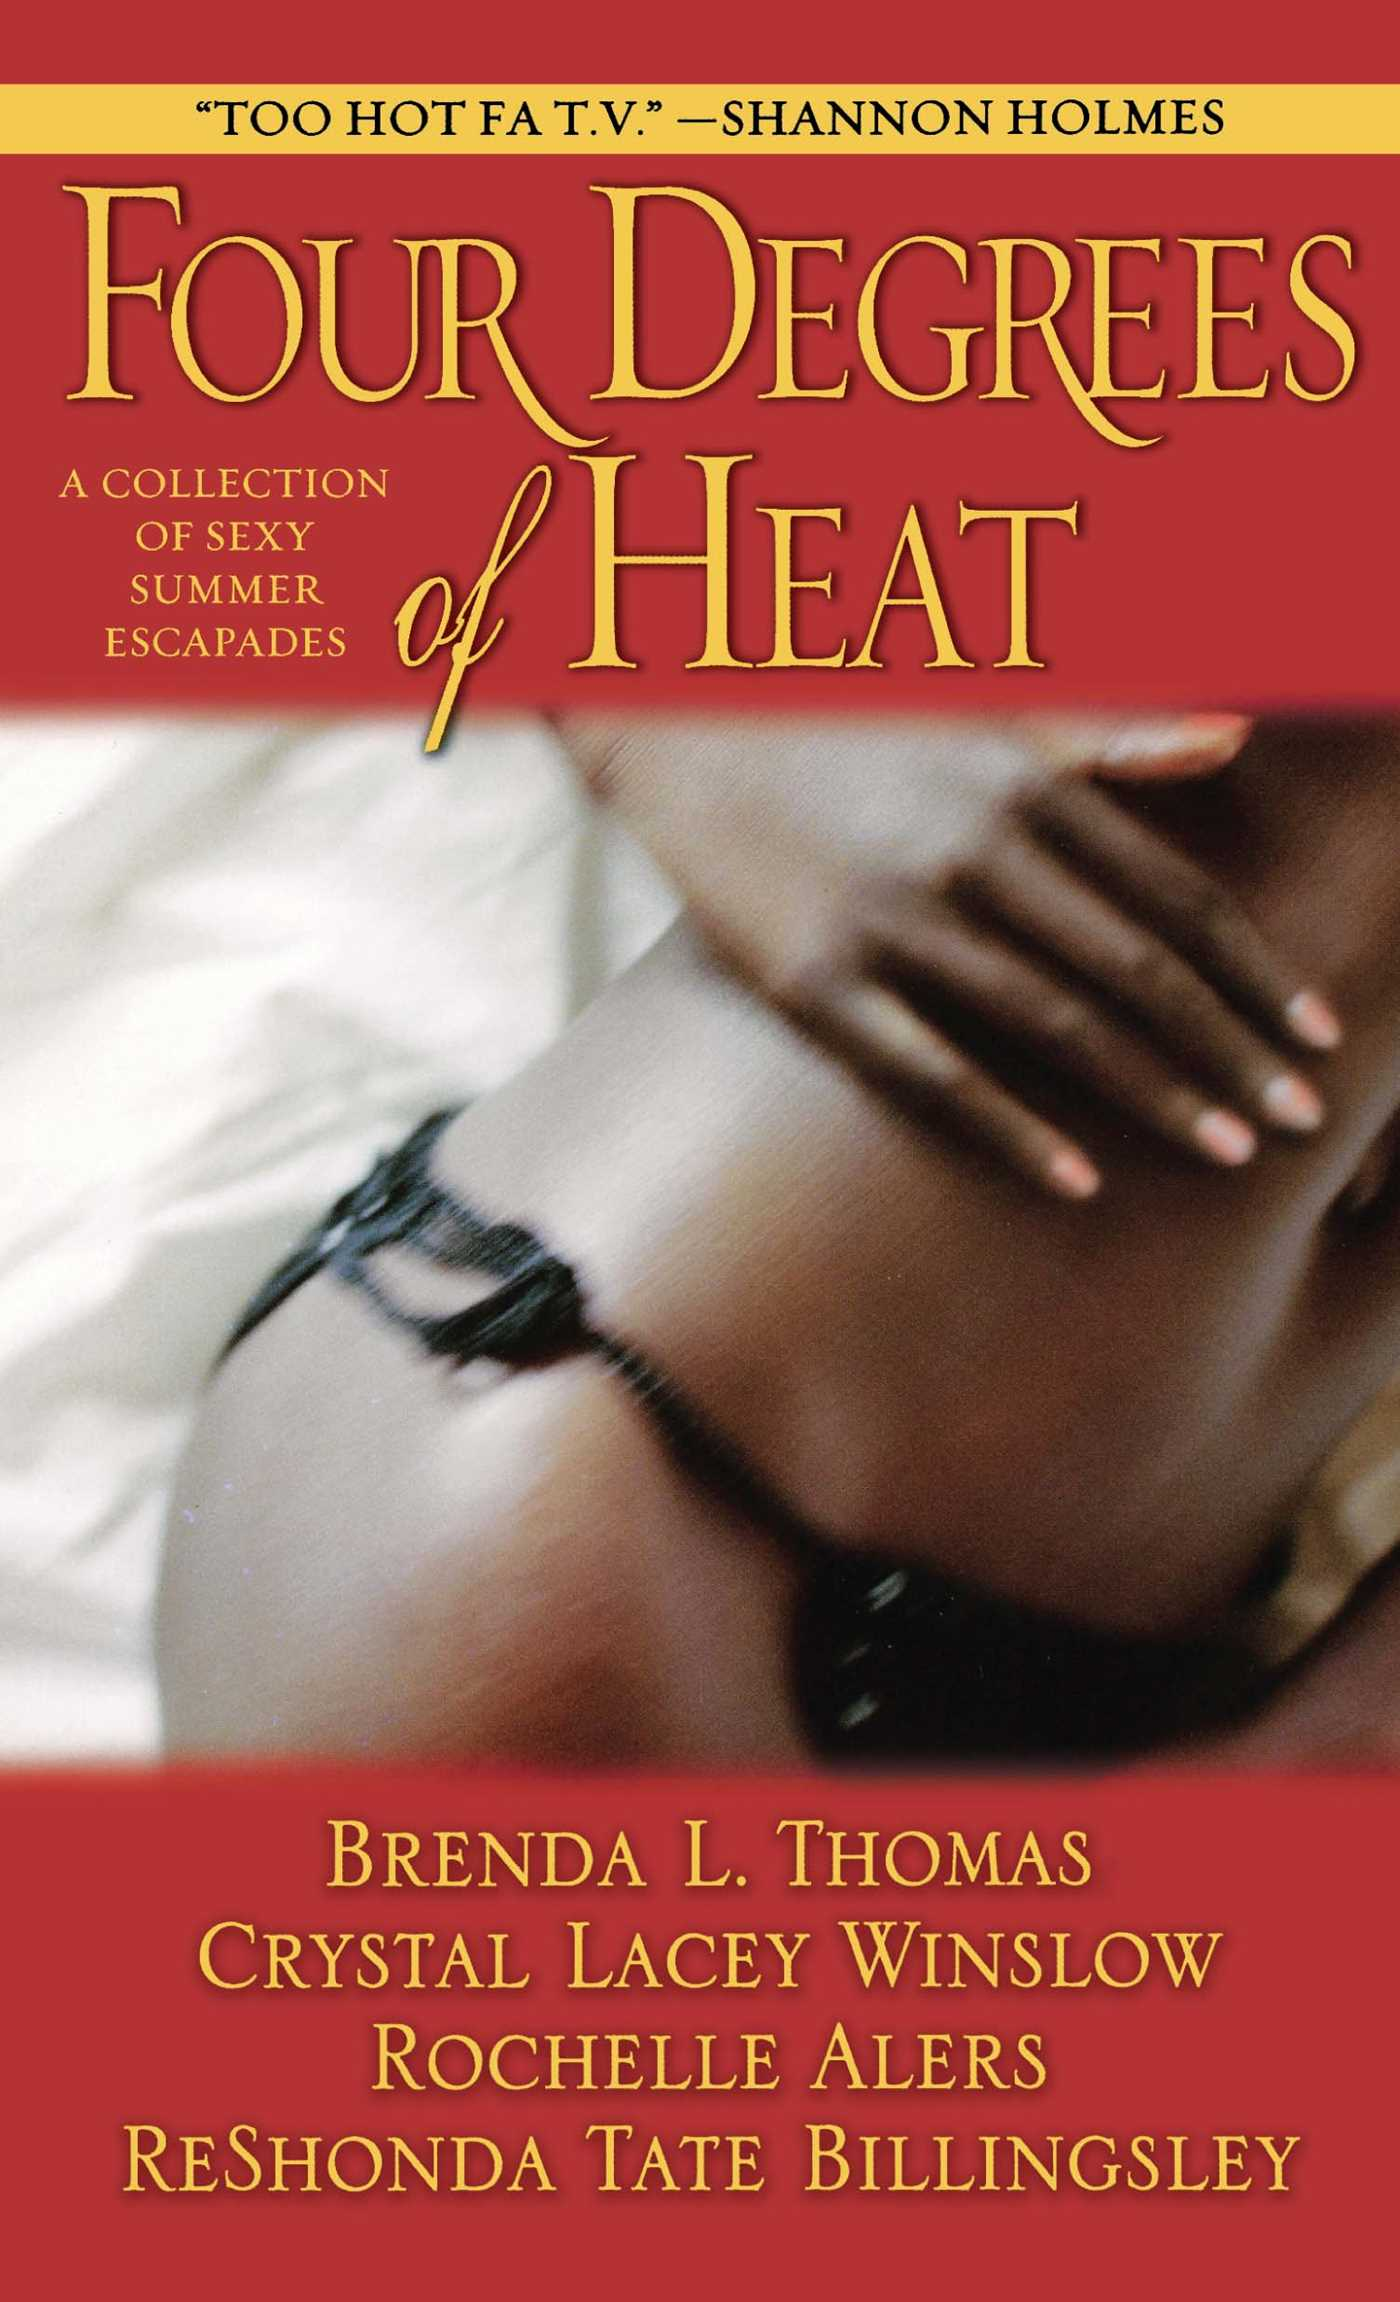 Four-degrees-of-heat-9780743491457_hr